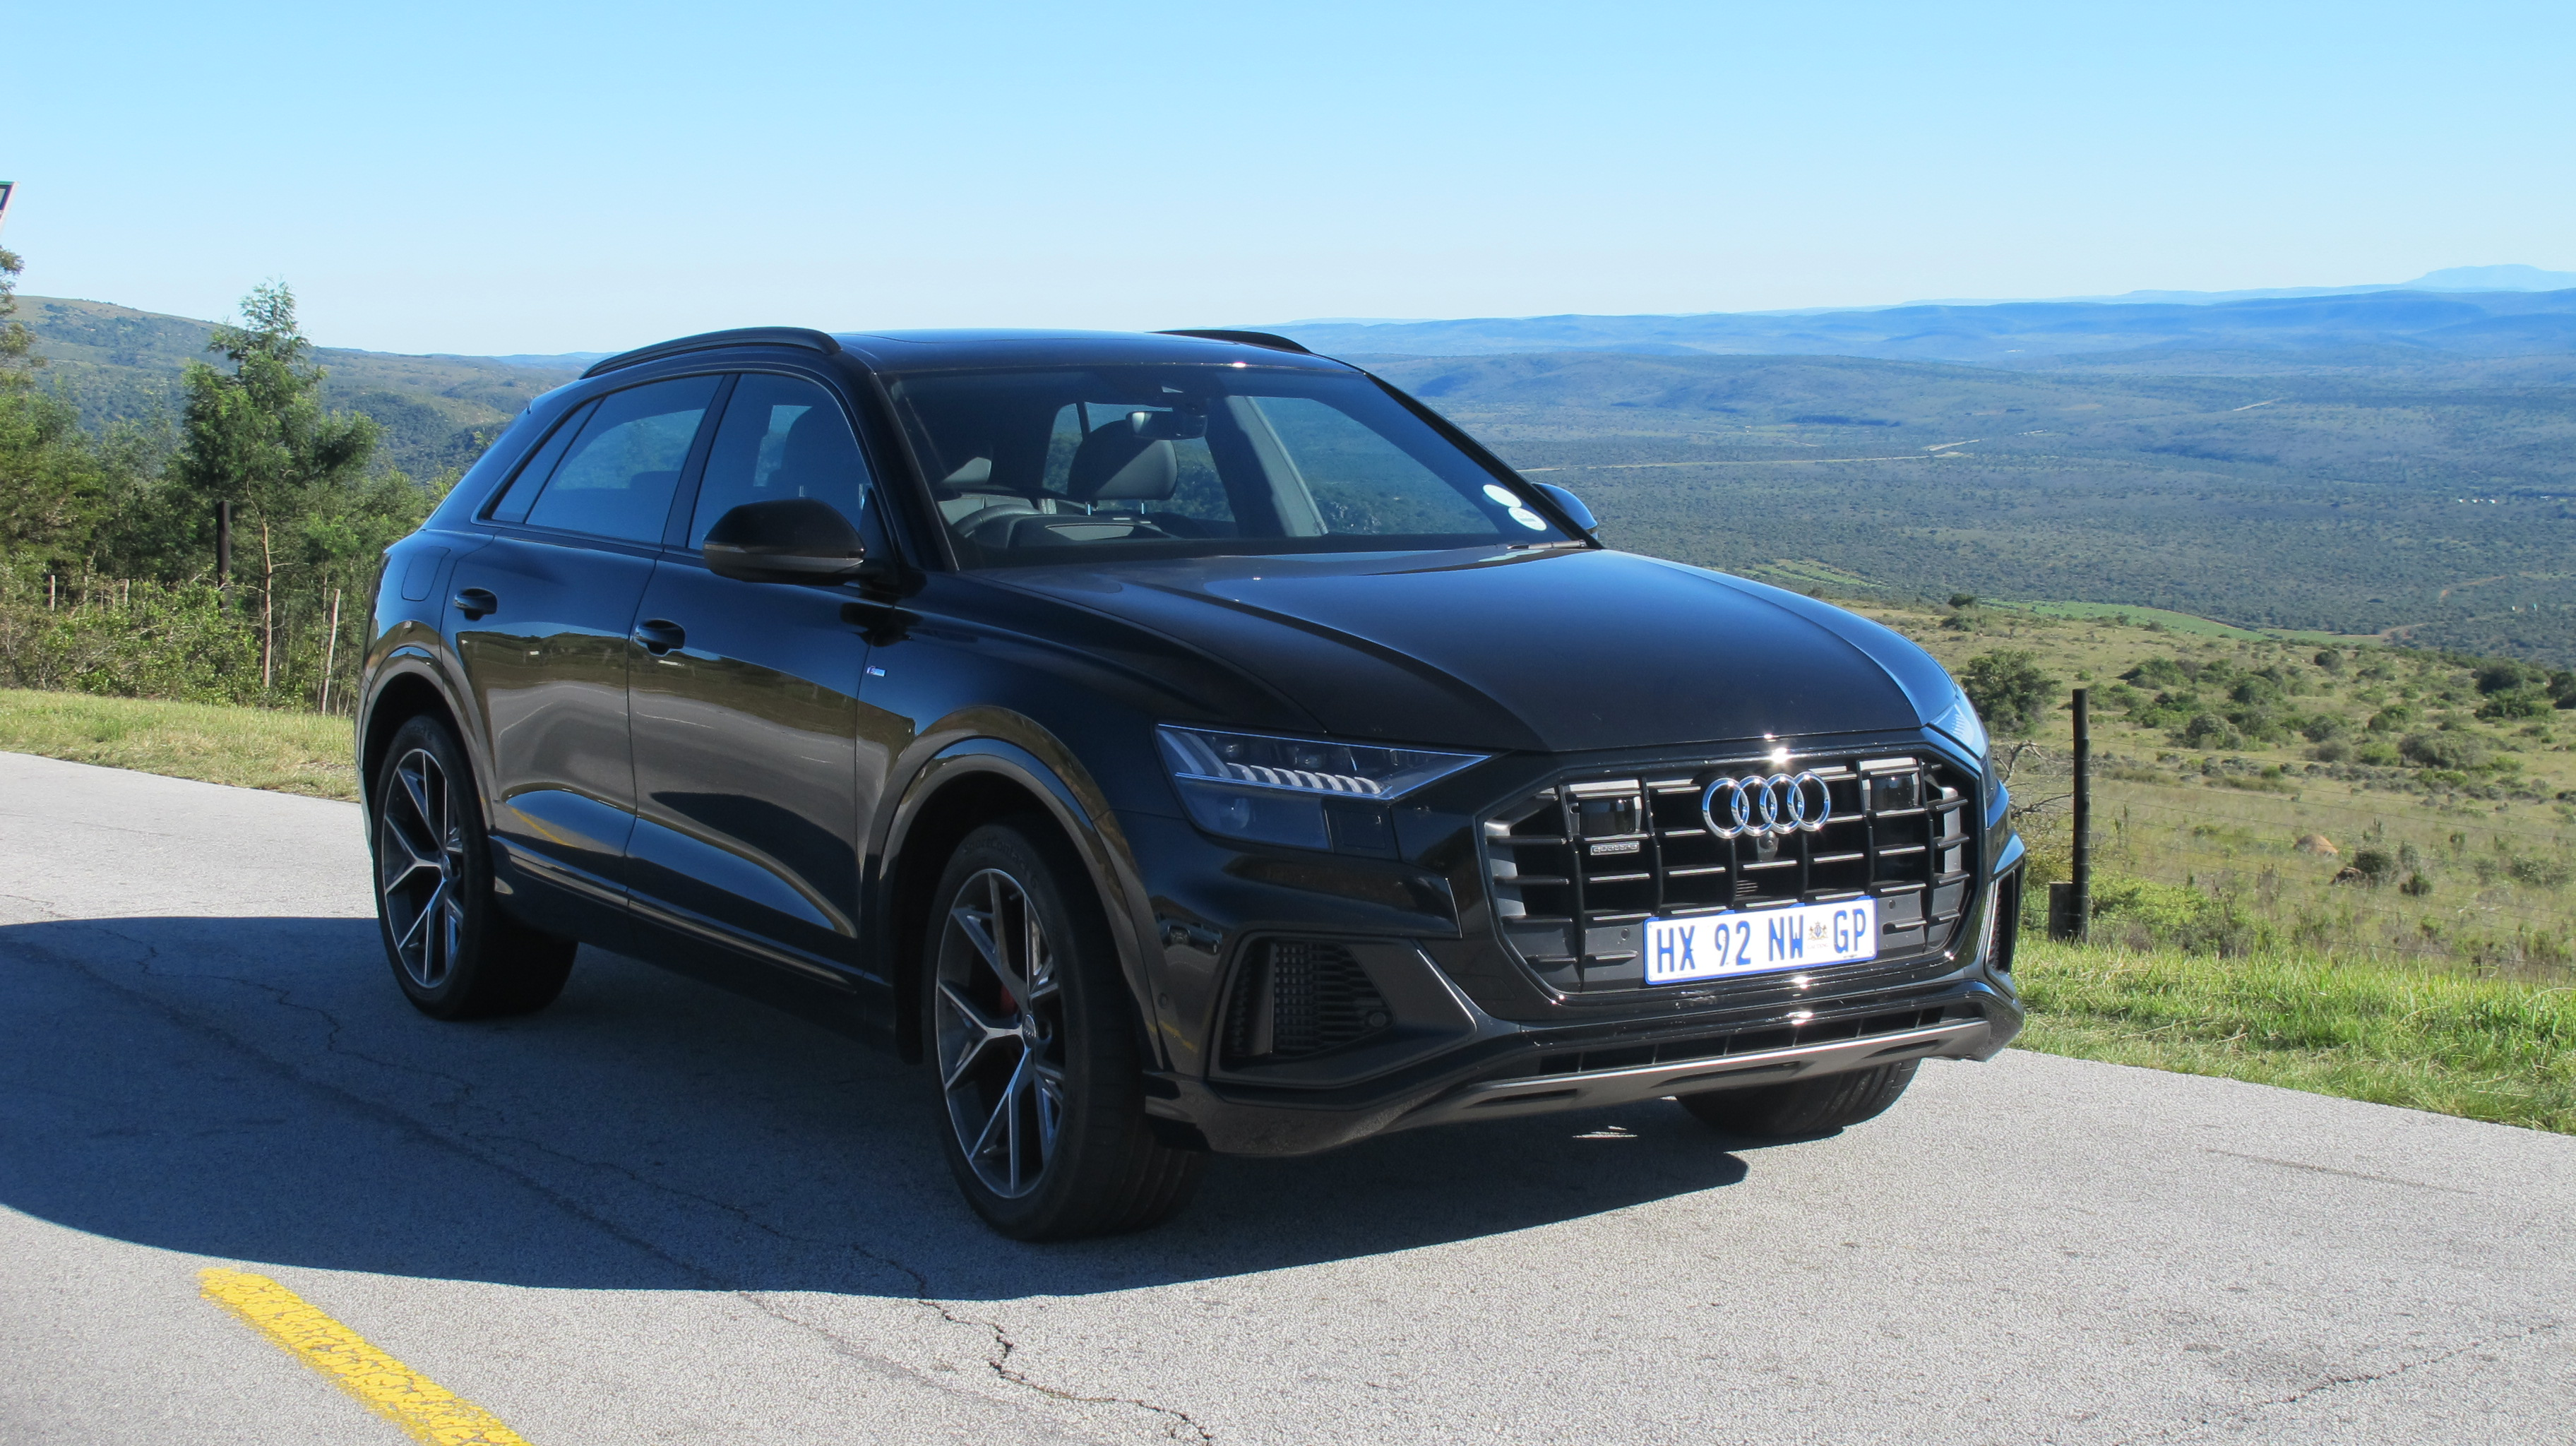 Does the Audi Q8 driving experience match its sportier and aggressive styling?